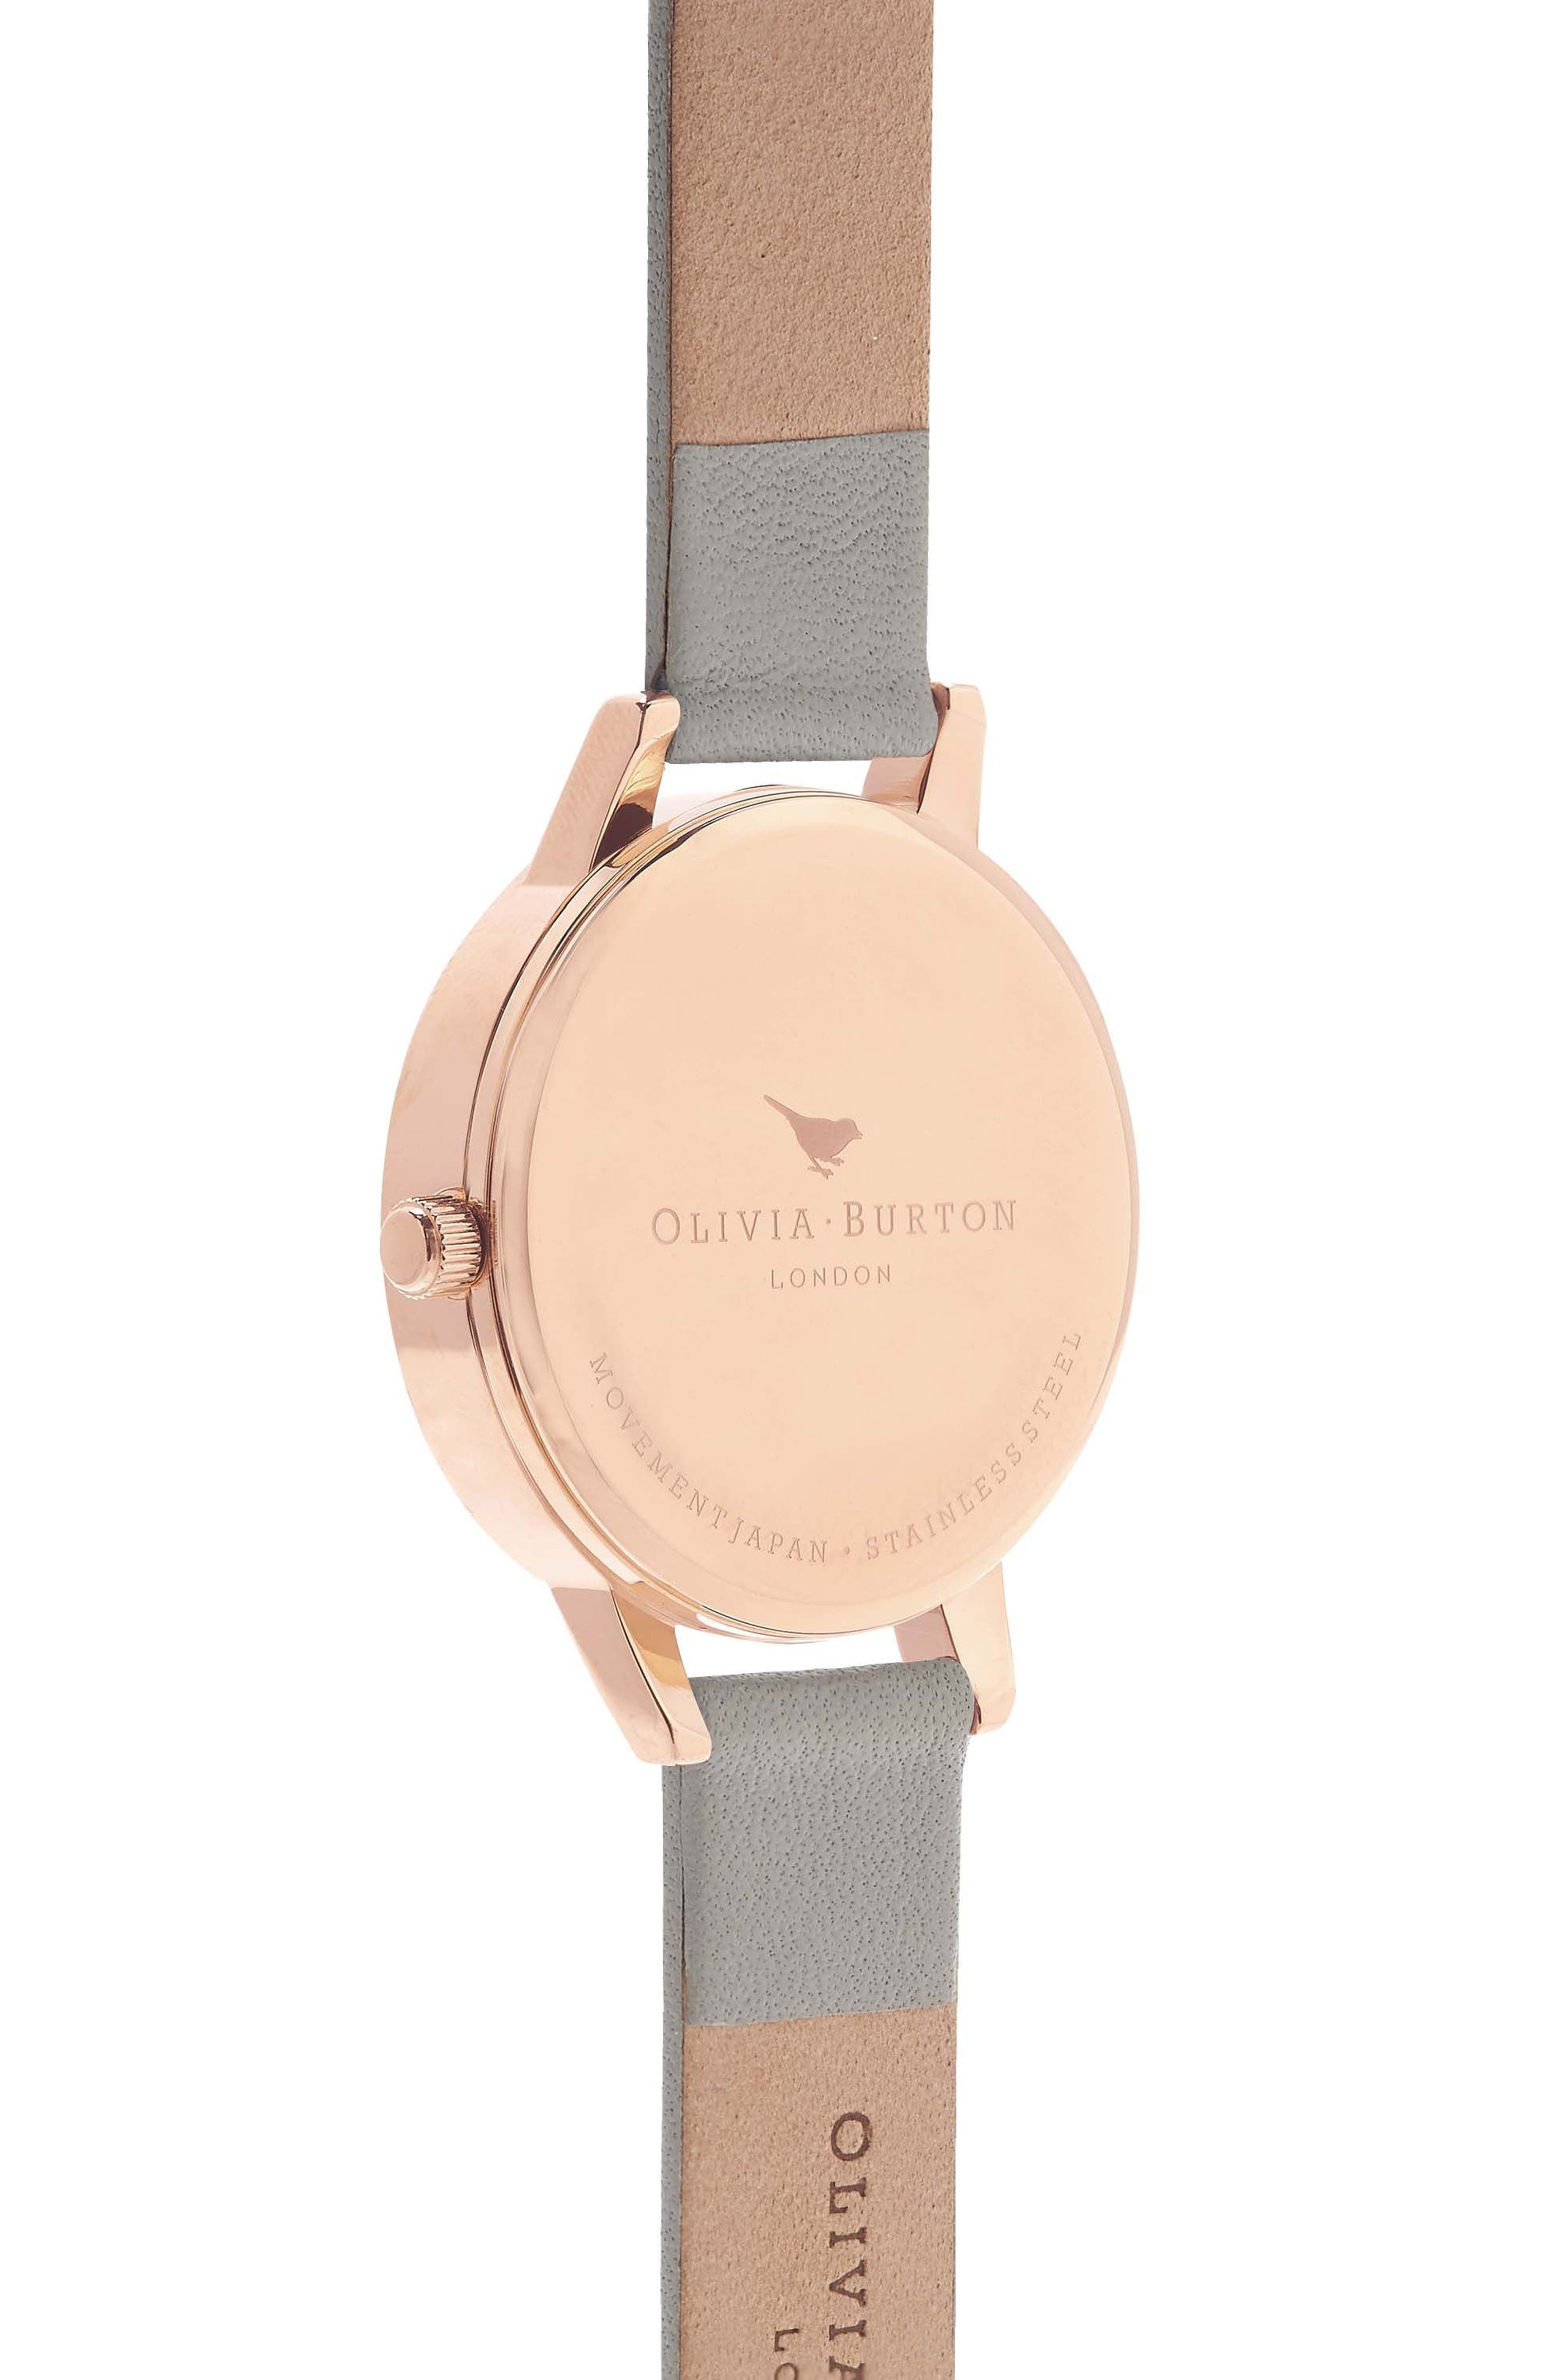 OLIVIA BURTON, Midi Dial Leather Strap Watch, 30mm, Alternate thumbnail 3, color, GREY/ WHITE/ ROSE GOLD